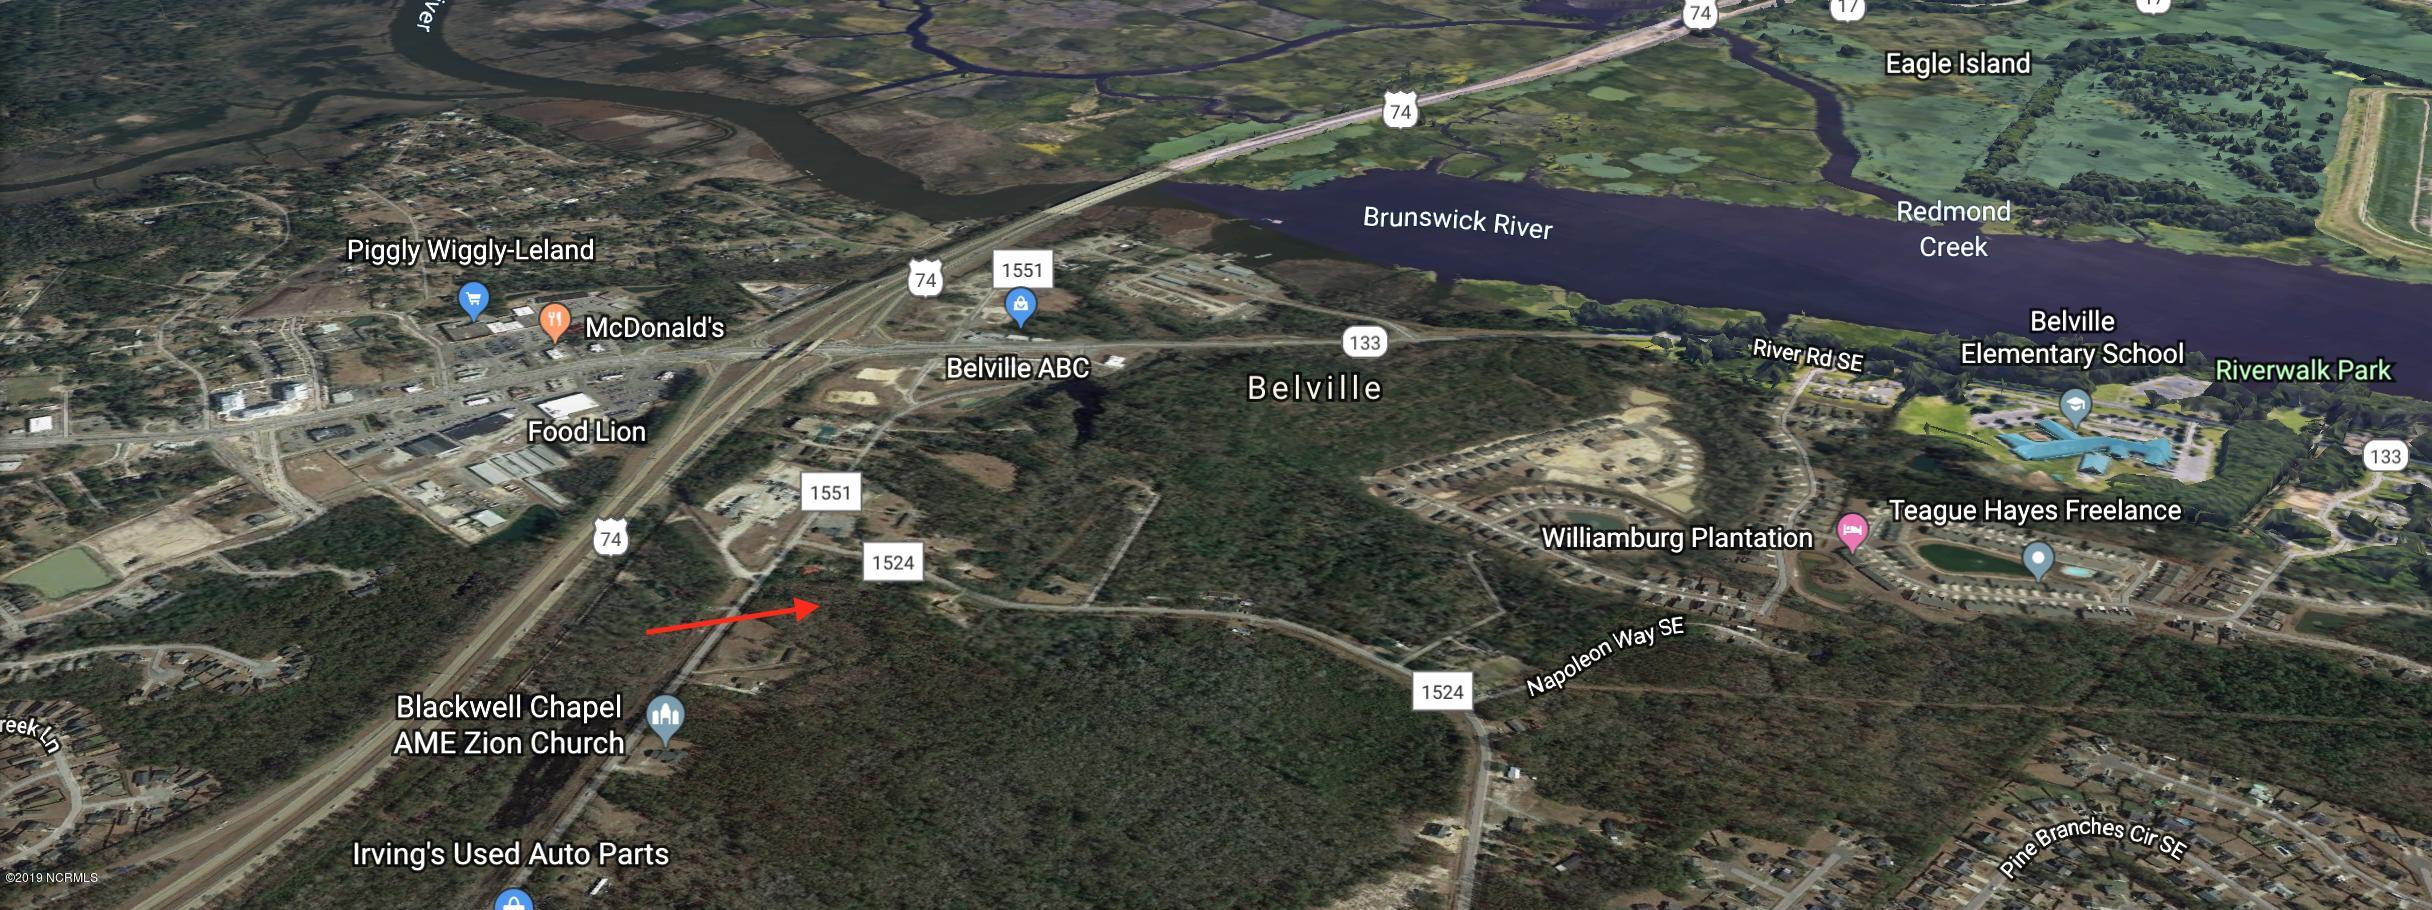 10183 Blackwell Road, Leland, North Carolina 28451, ,Residential land,For sale,Blackwell,100175227